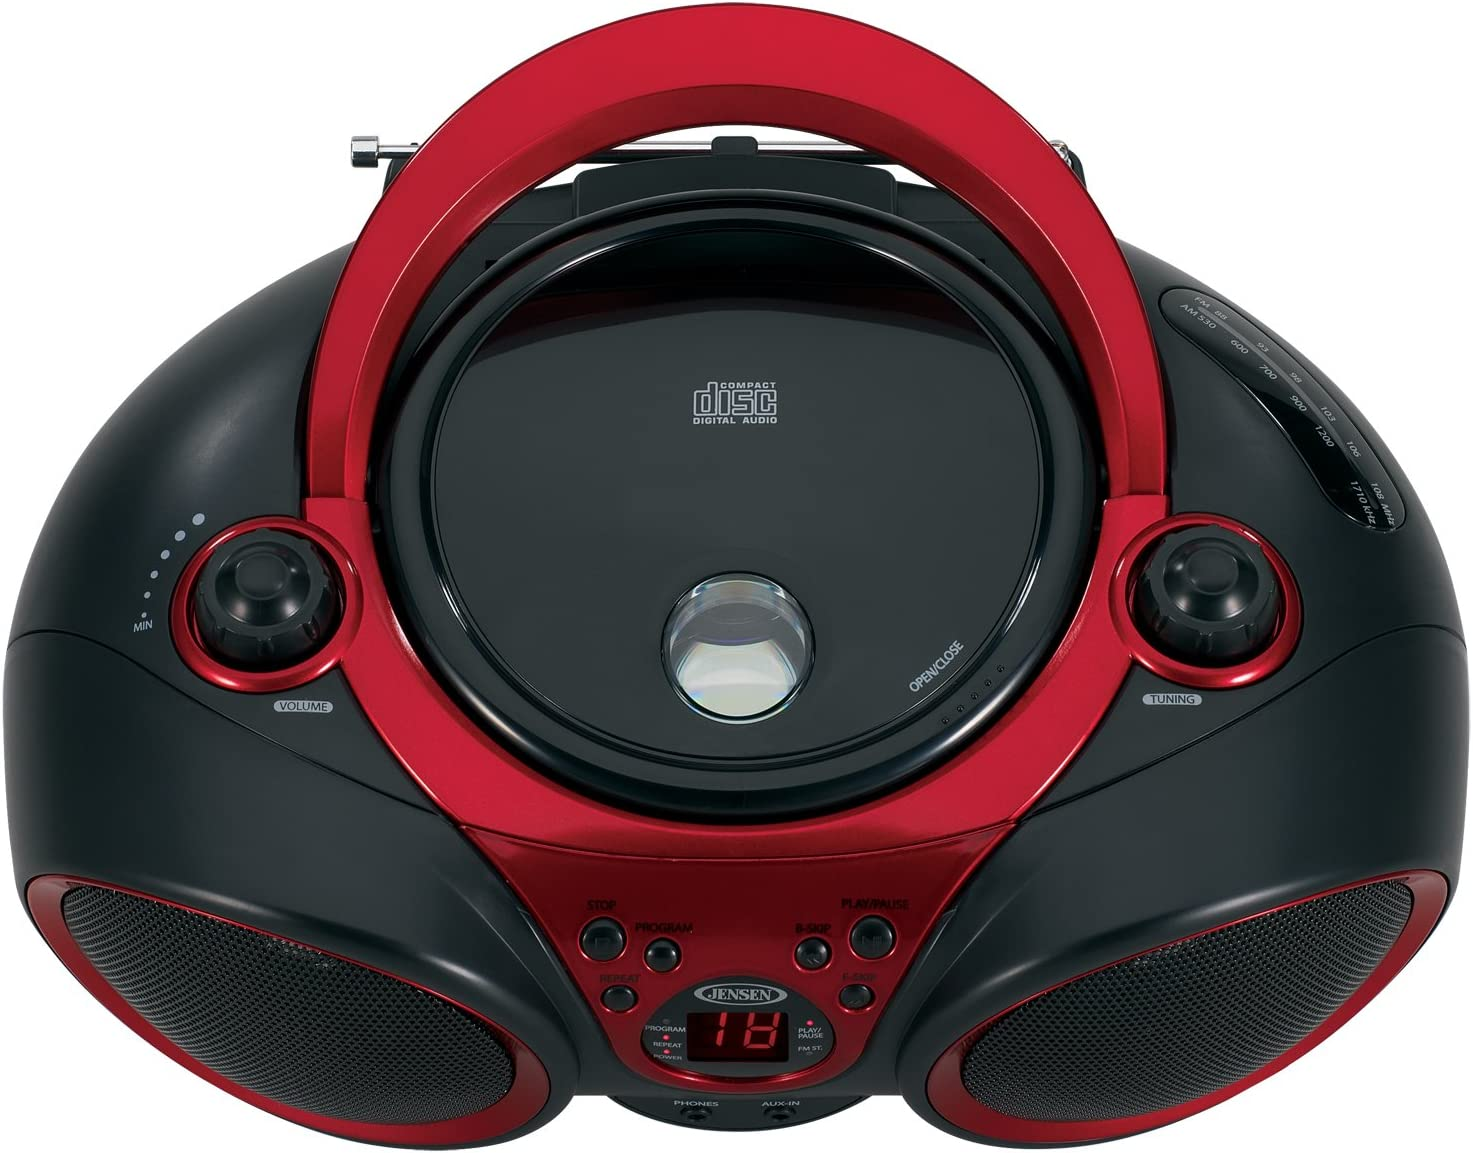 JENSEN Jensen Portable Stereo Cd Player With Am And Fm Radio